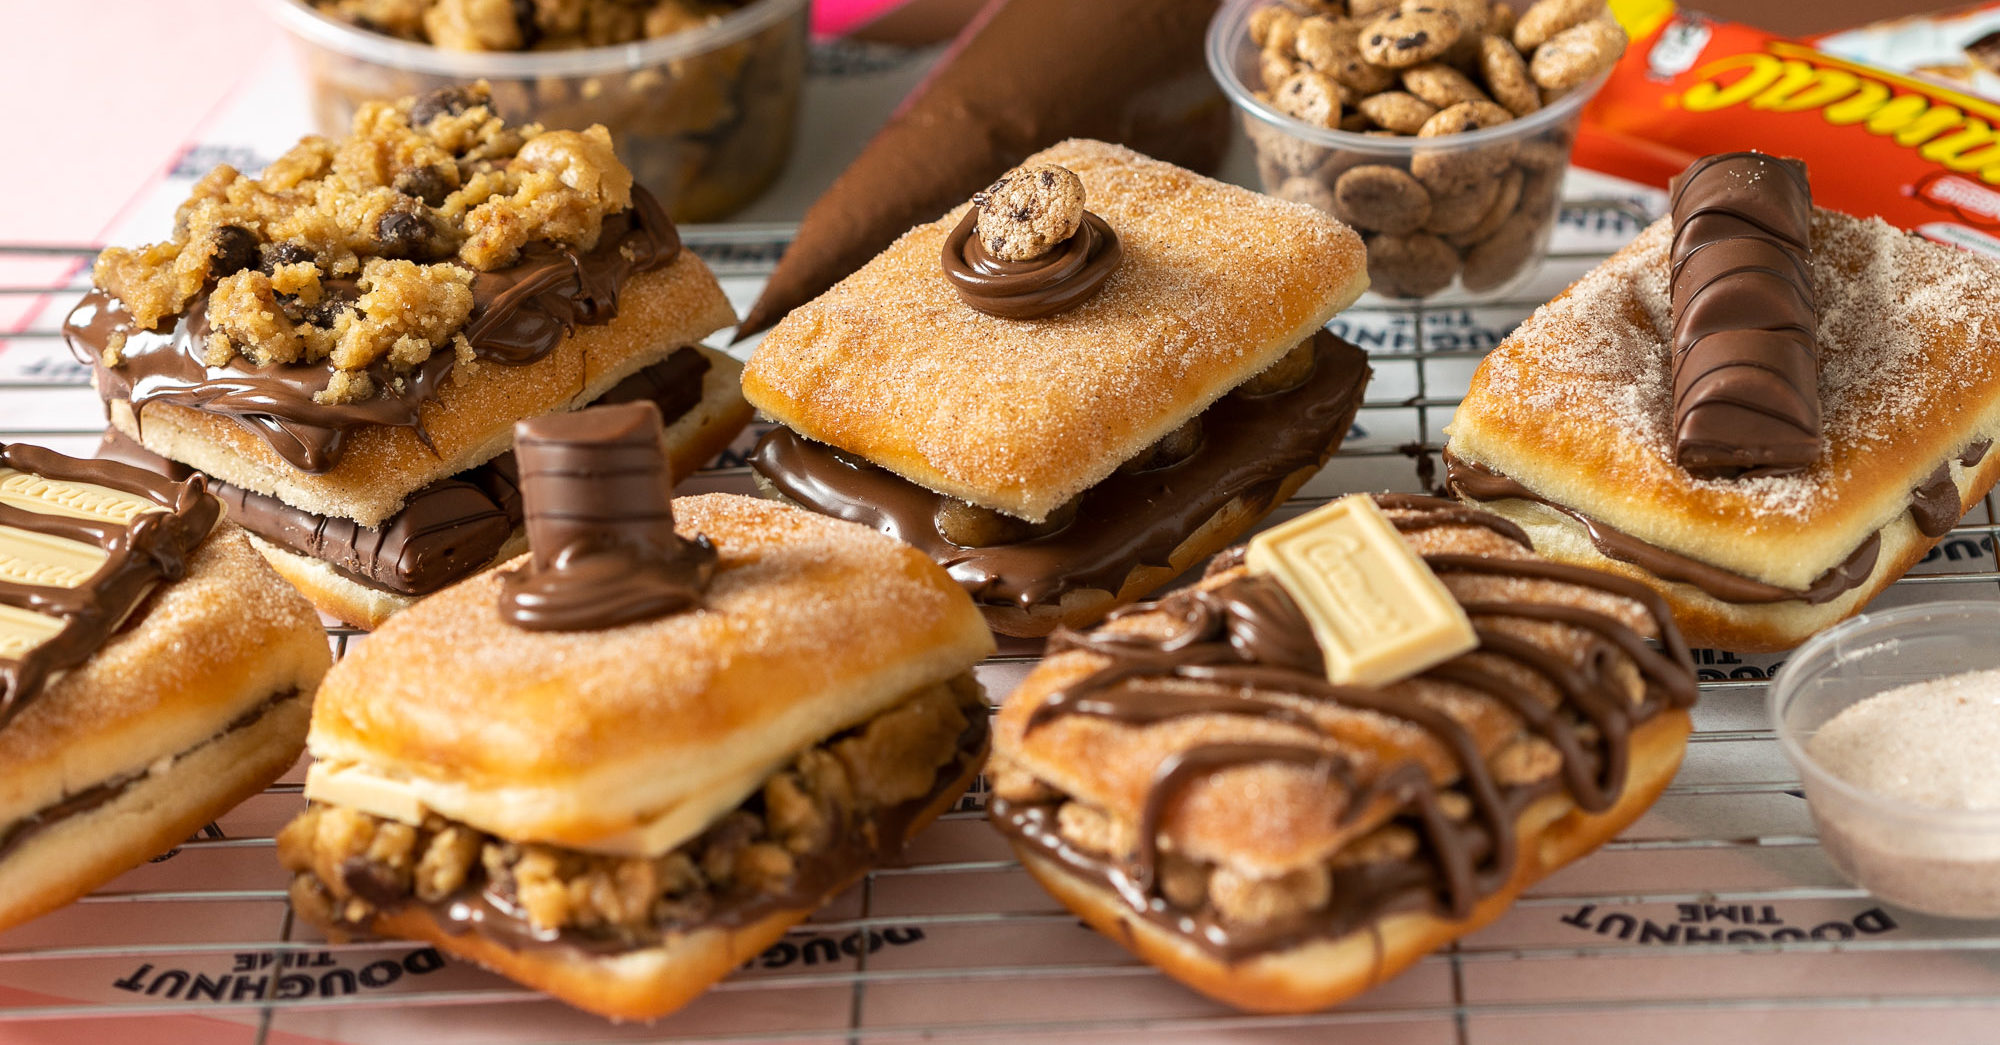 The doughnut SANDWICH exists and you can get it delivered straight to your door